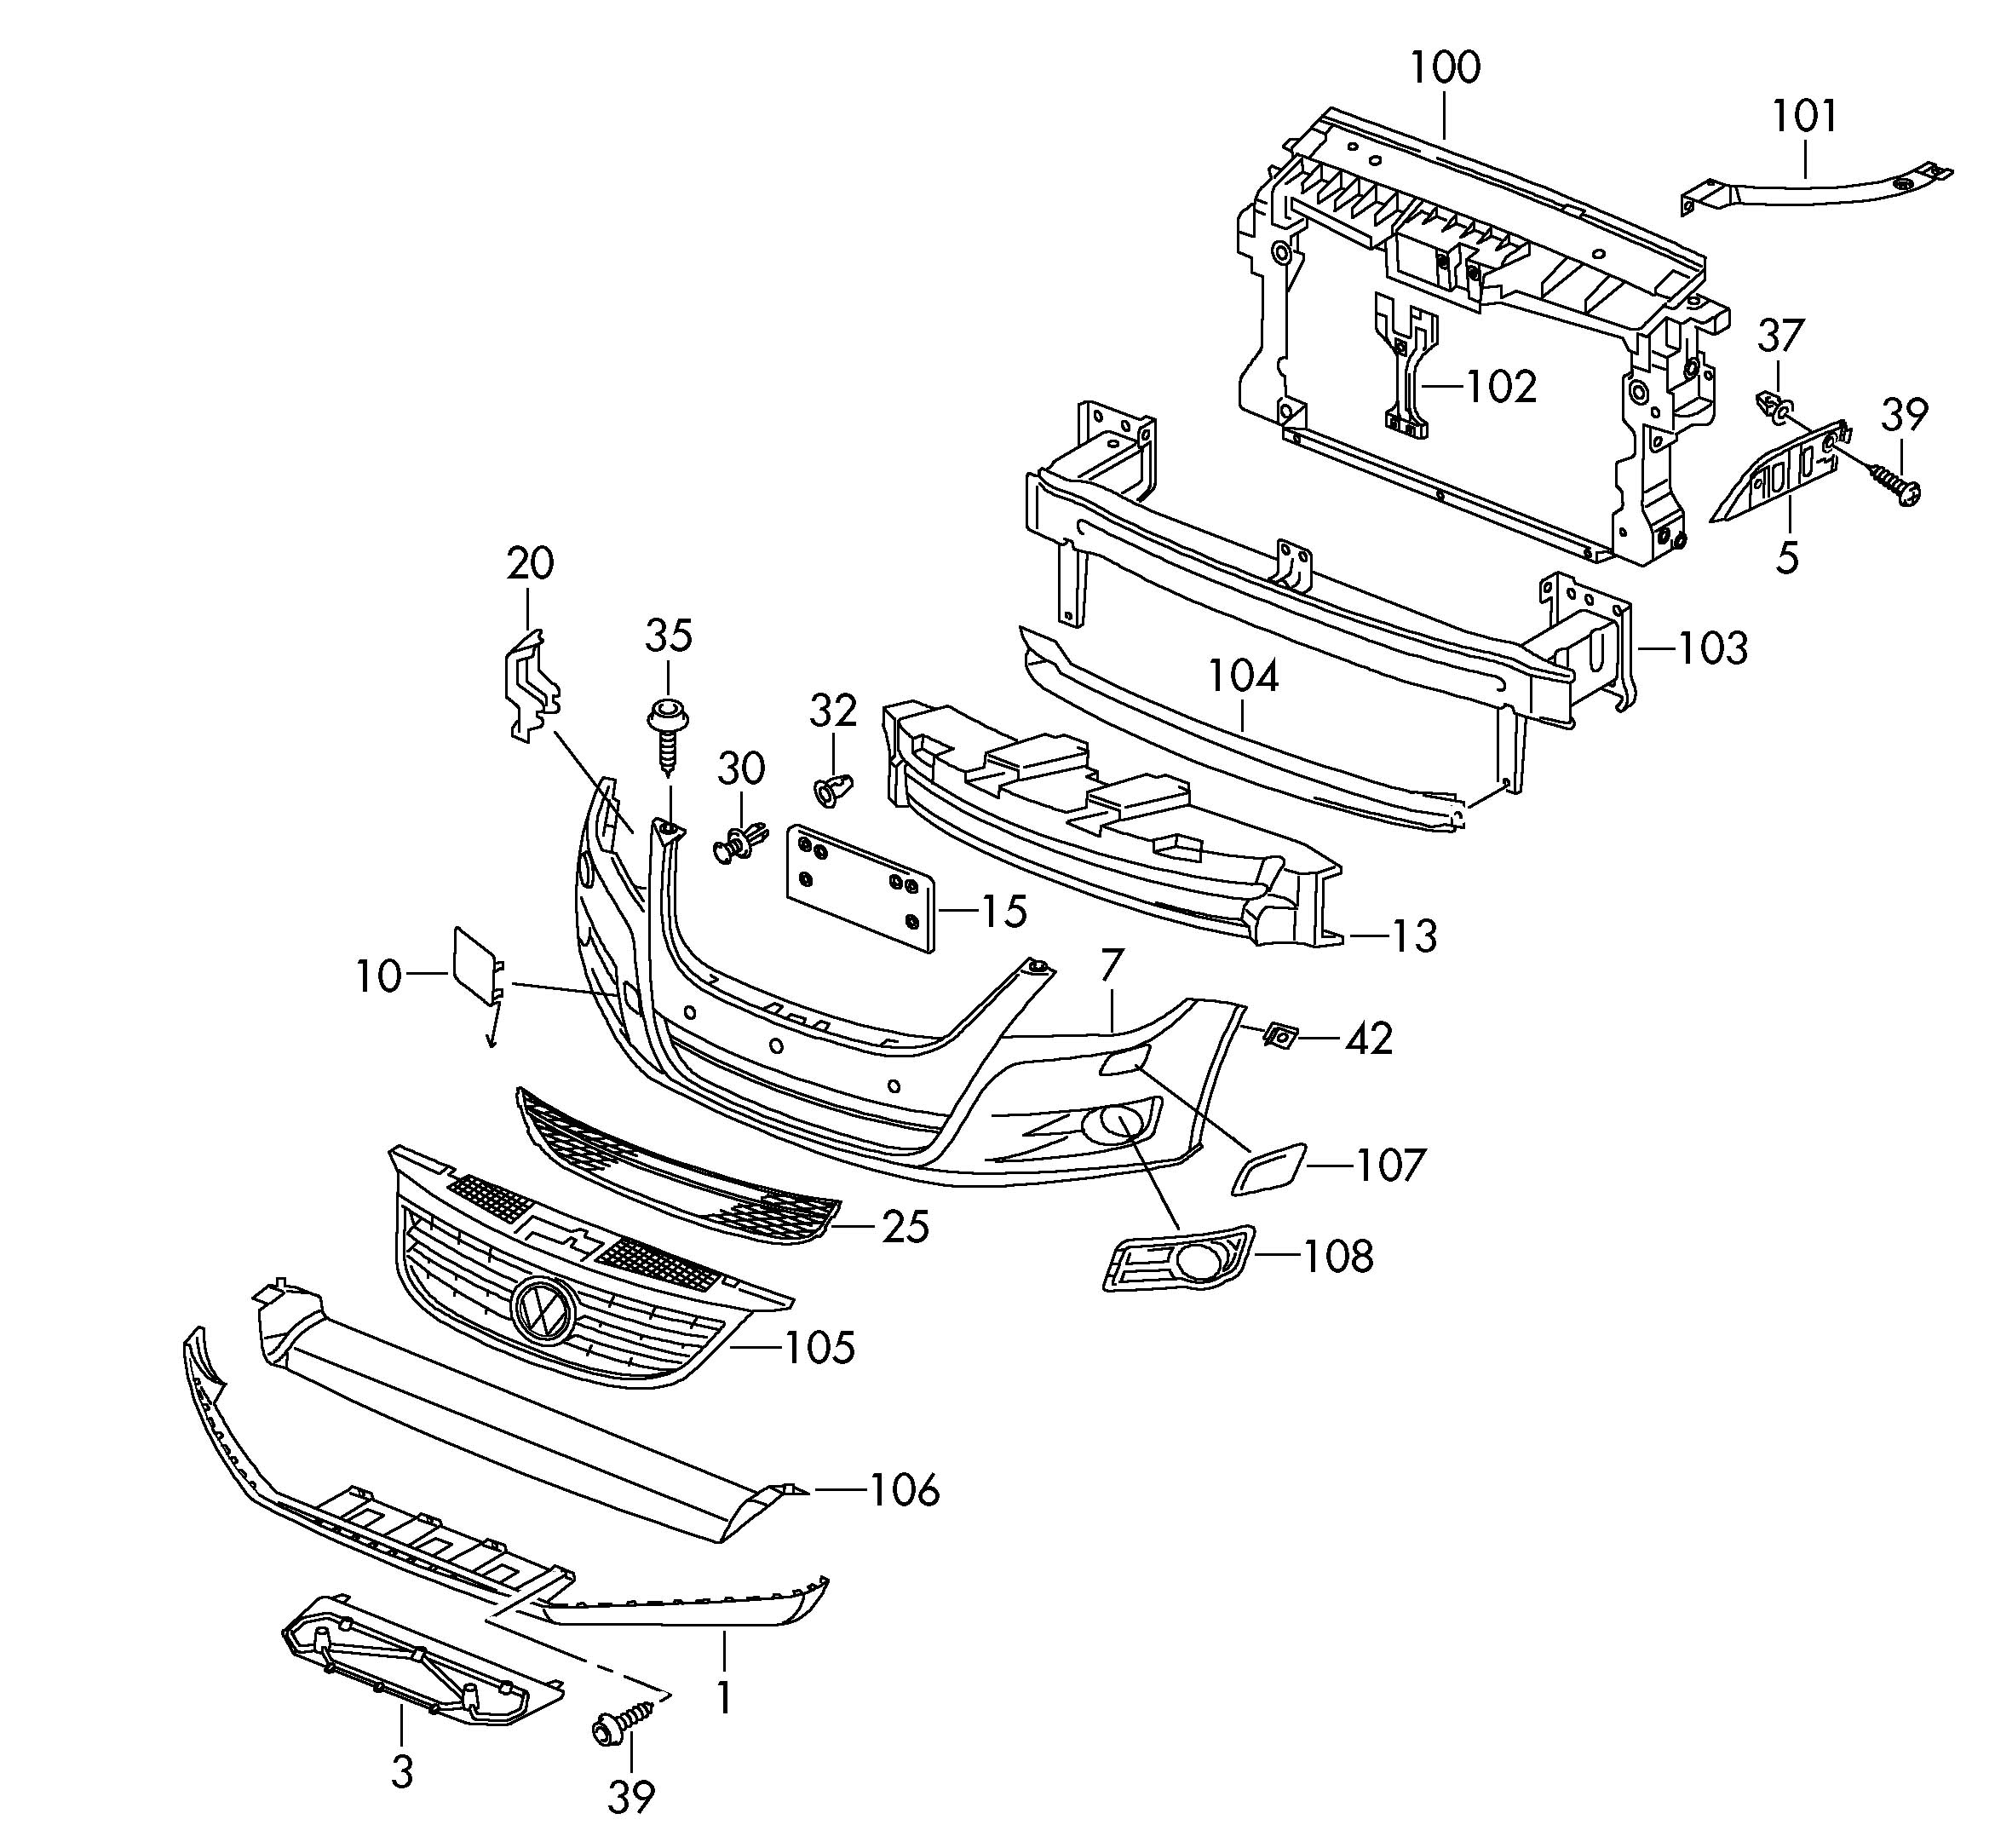 Volkswagen Tiguan Guide frame for vehicles with headlight